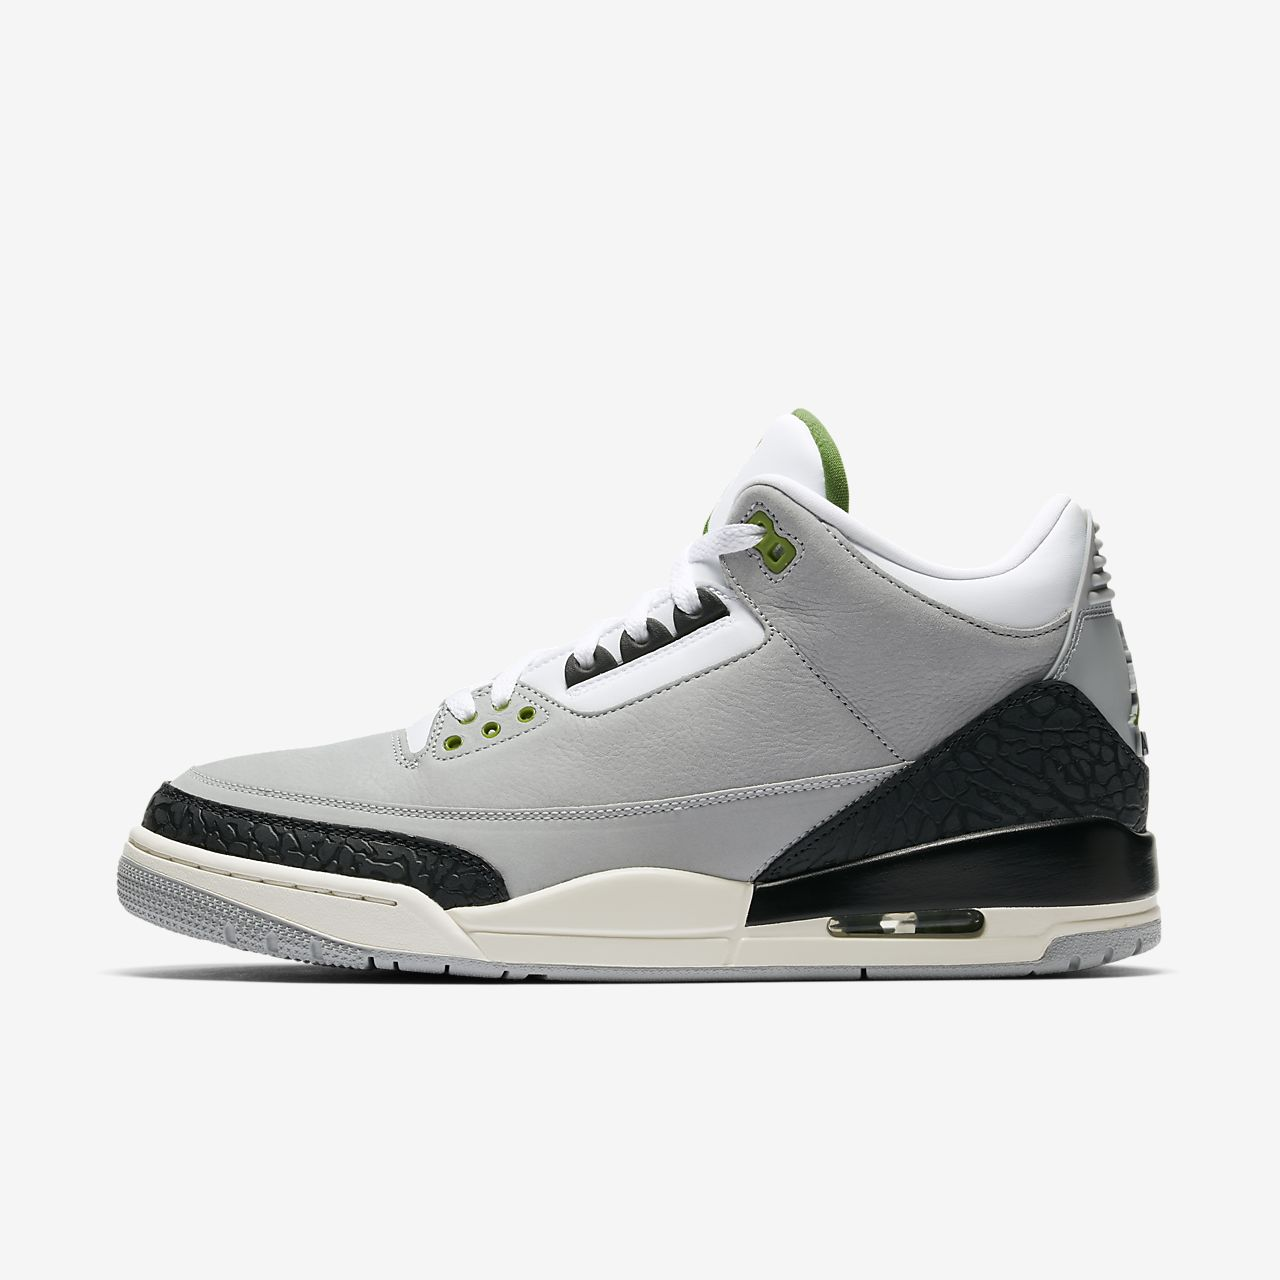 ecd6afff950856 Air Jordan 3 Retro Men s Shoe. Nike.com AU